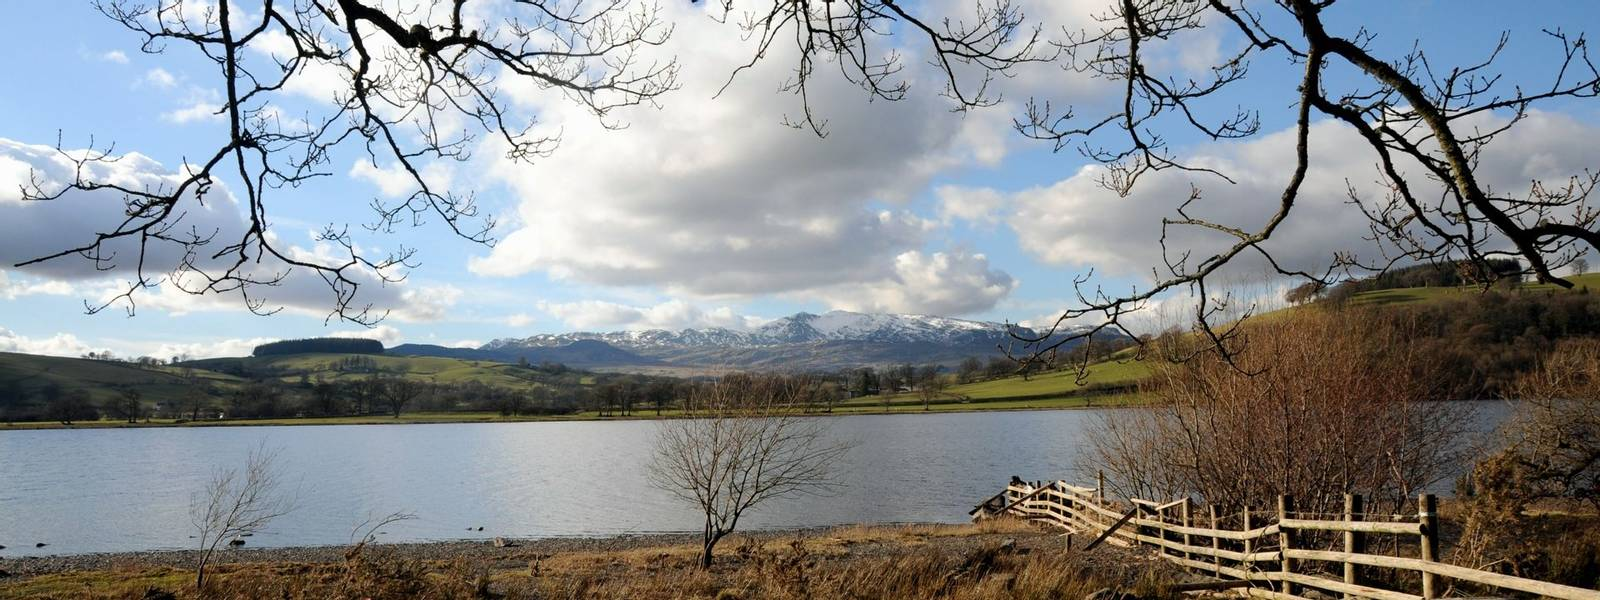 Southern Snowdonia - Dolgellau -Spring and Winter - AdobeStock_105299598.jpeg